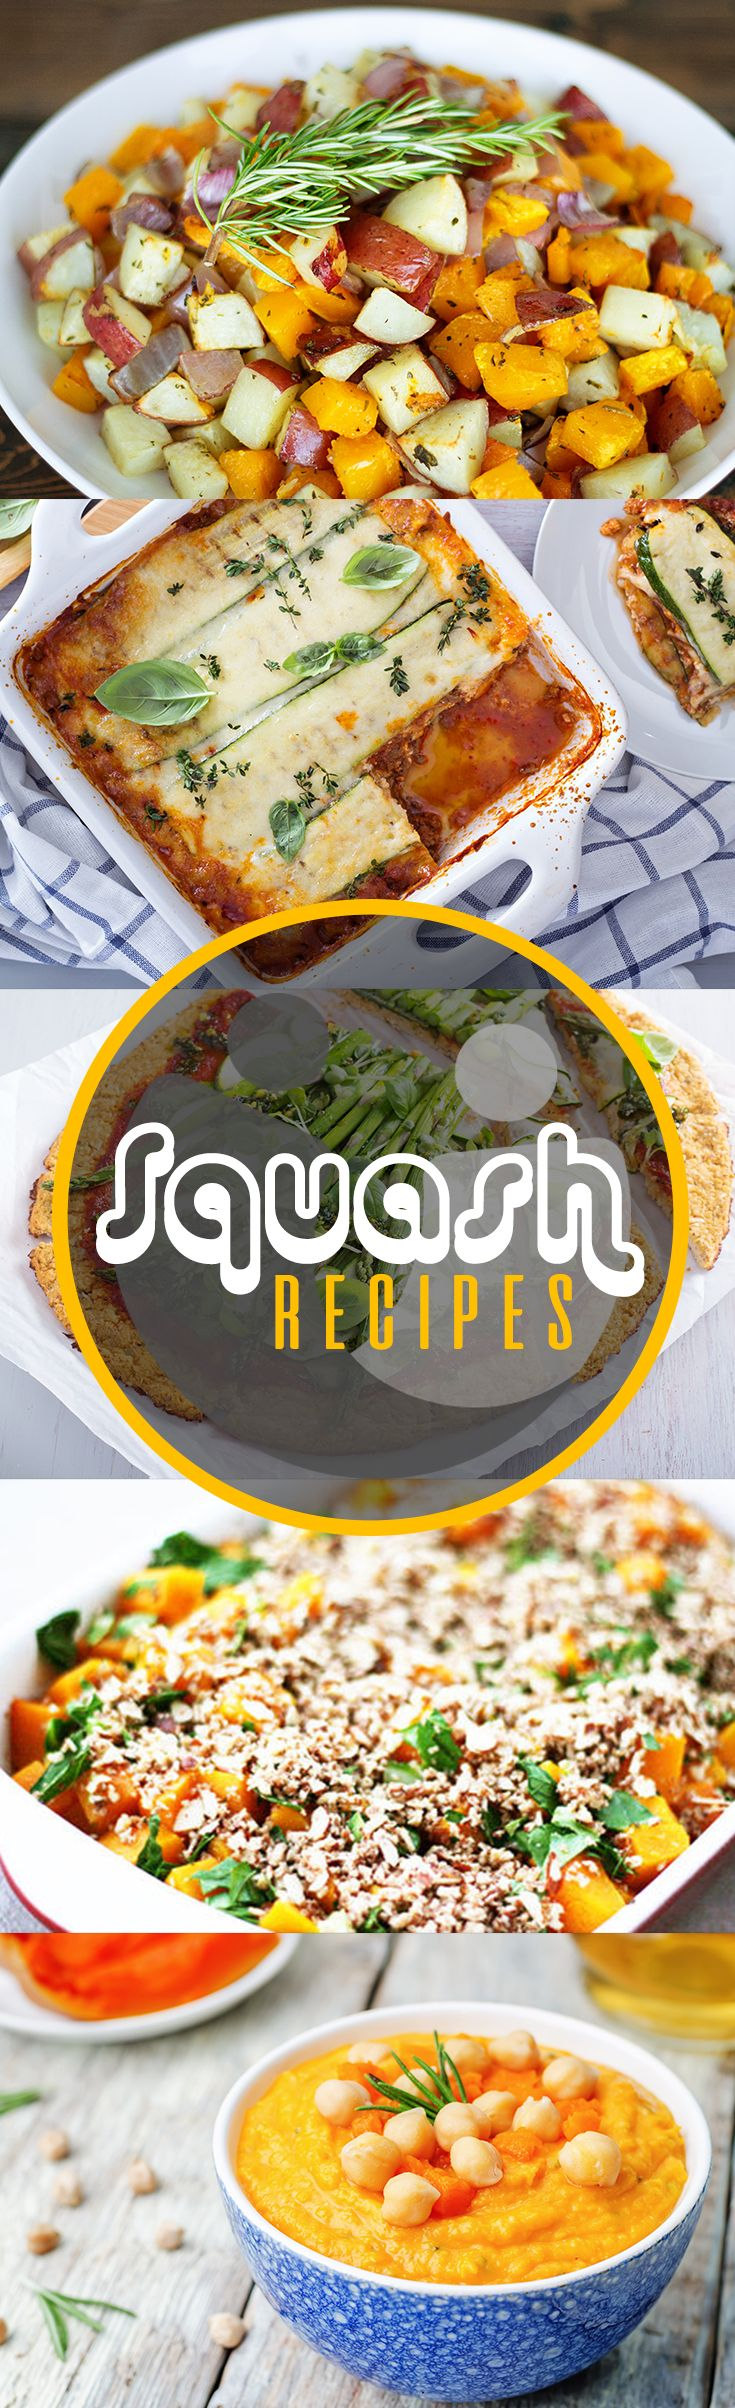 198 best dinner recipes diabetic connect images on pinterest squash is a quintessential fall food not sure how to prepare it or wanting to diabetic recipesveggie forumfinder Images